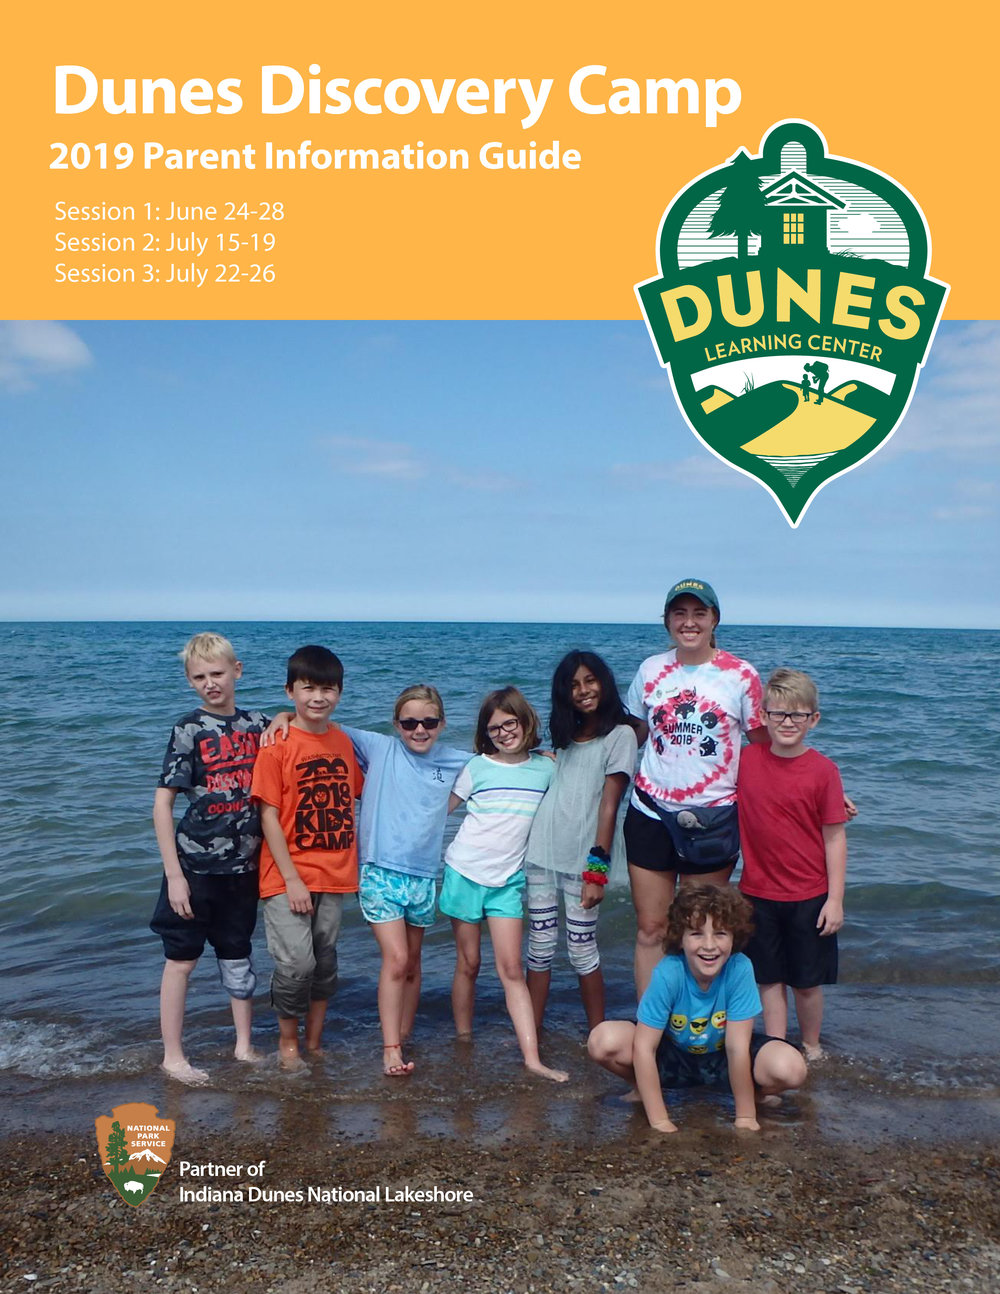 Dunes Discovery Camp Parent Guide